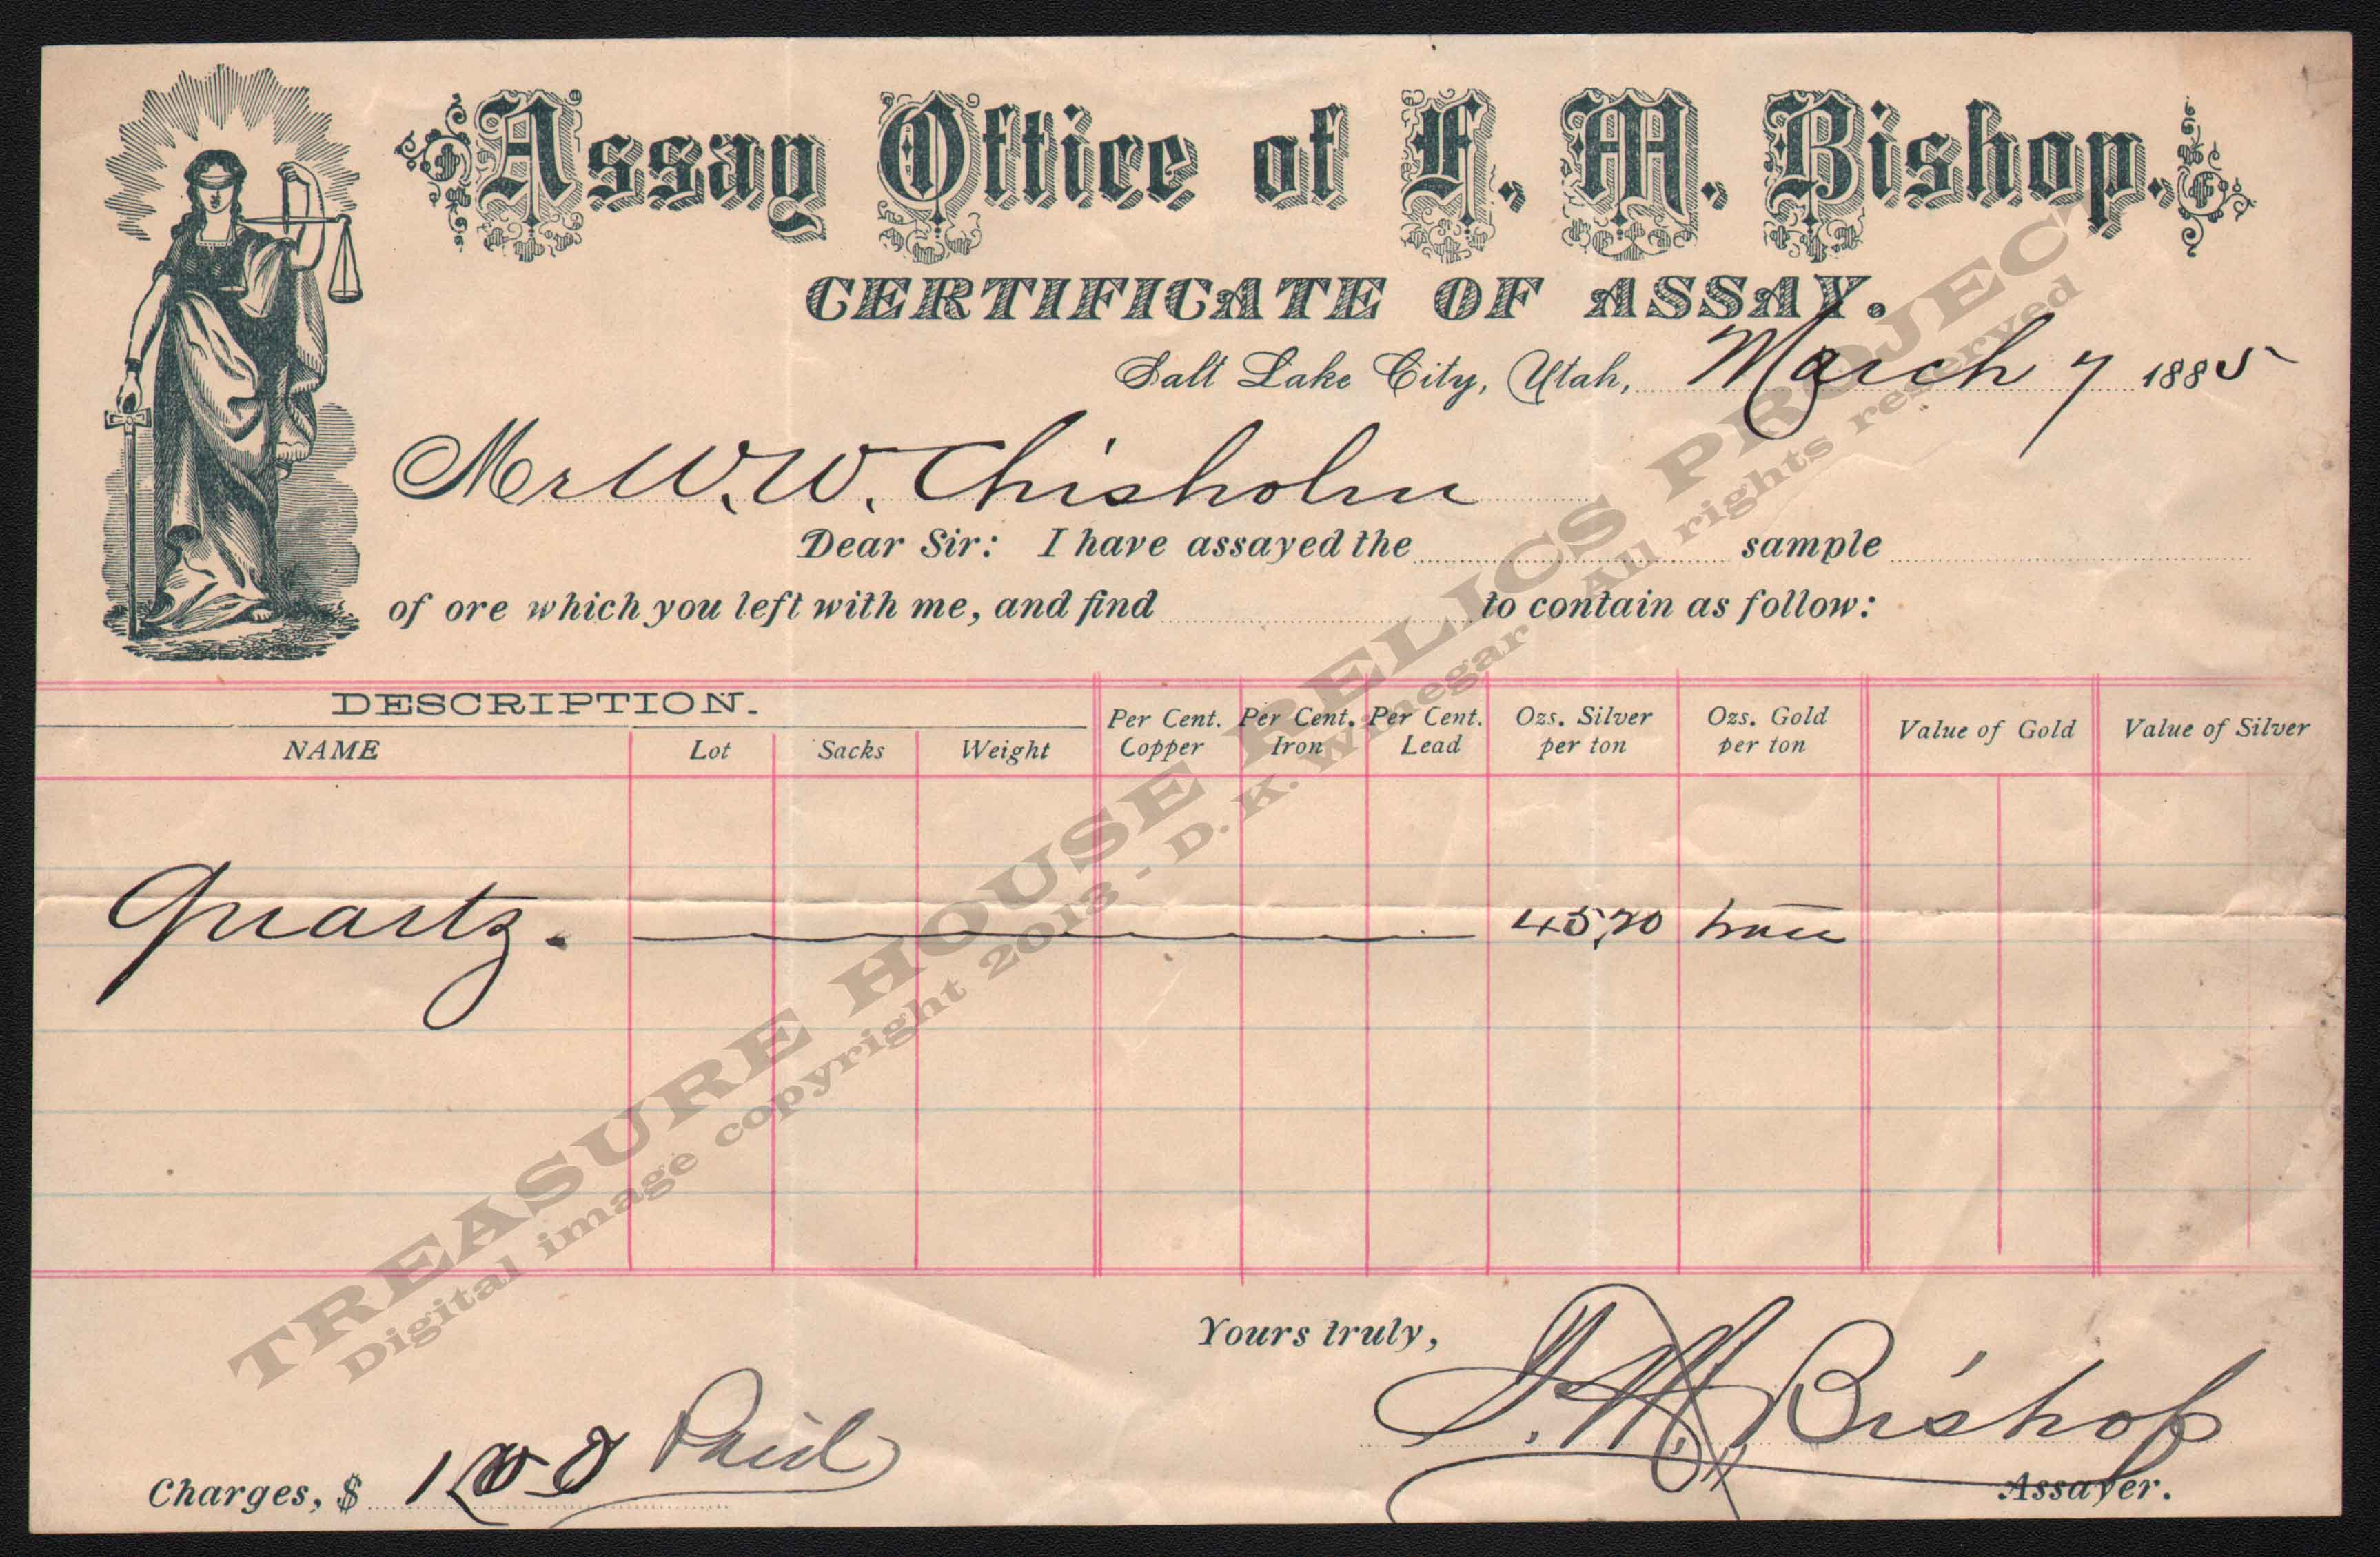 LETTERHEAD/ASSAY_BISHOP_F_M_1885_3_7_W_W_CHISHOLM_DSW_2012_400_CROP_EMBOSS.jpg